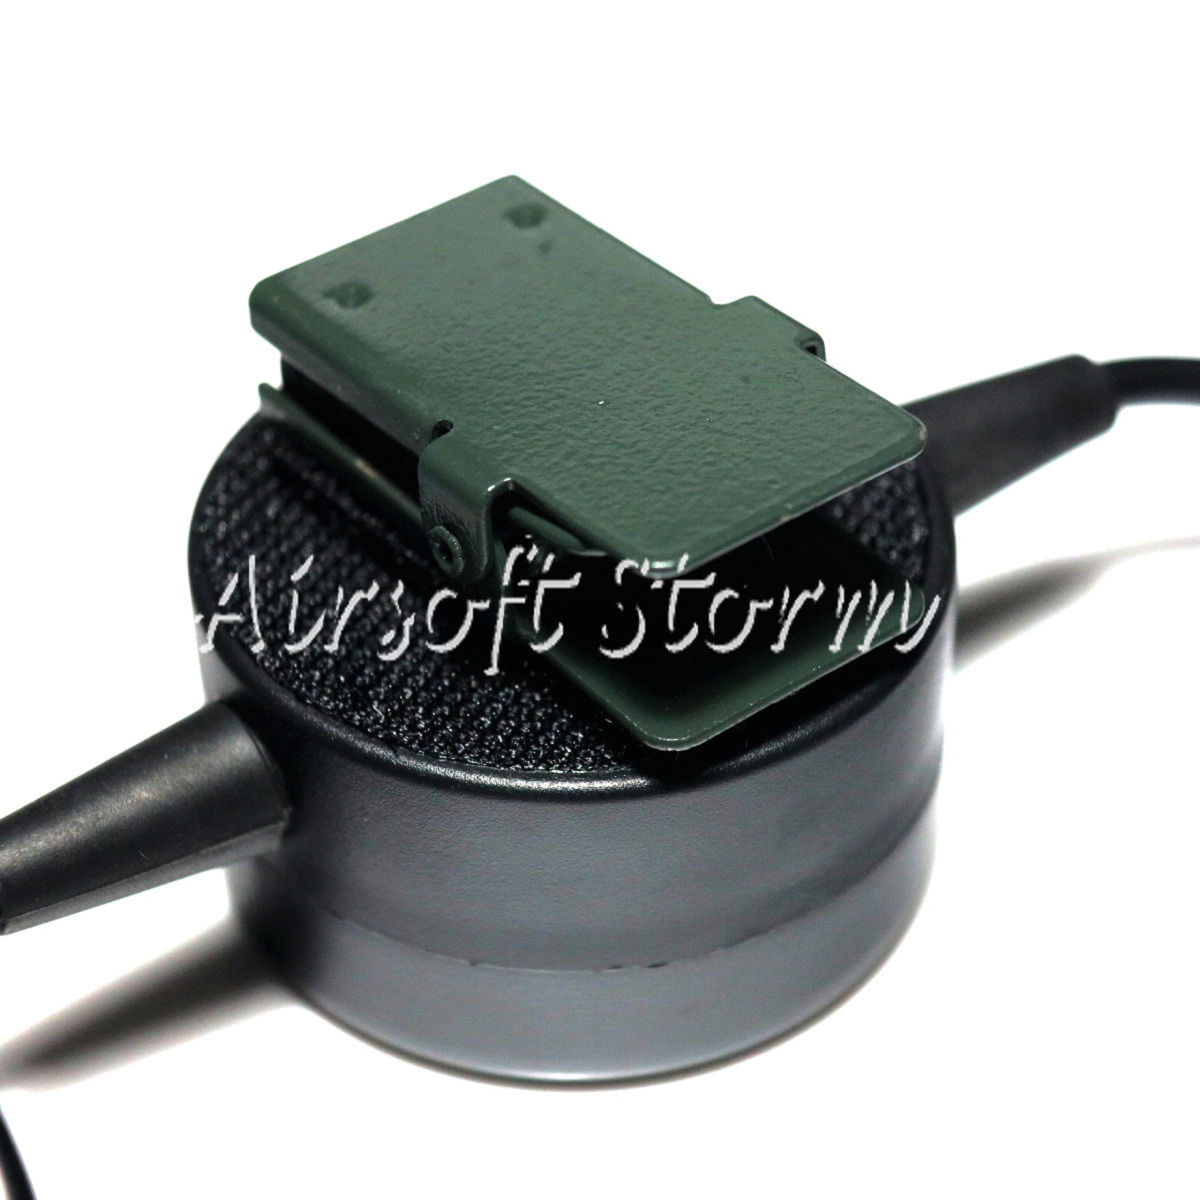 Airsoft Gear SWAT Element TCI Headset PTT for Midland 2 Pin Radio - Click Image to Close